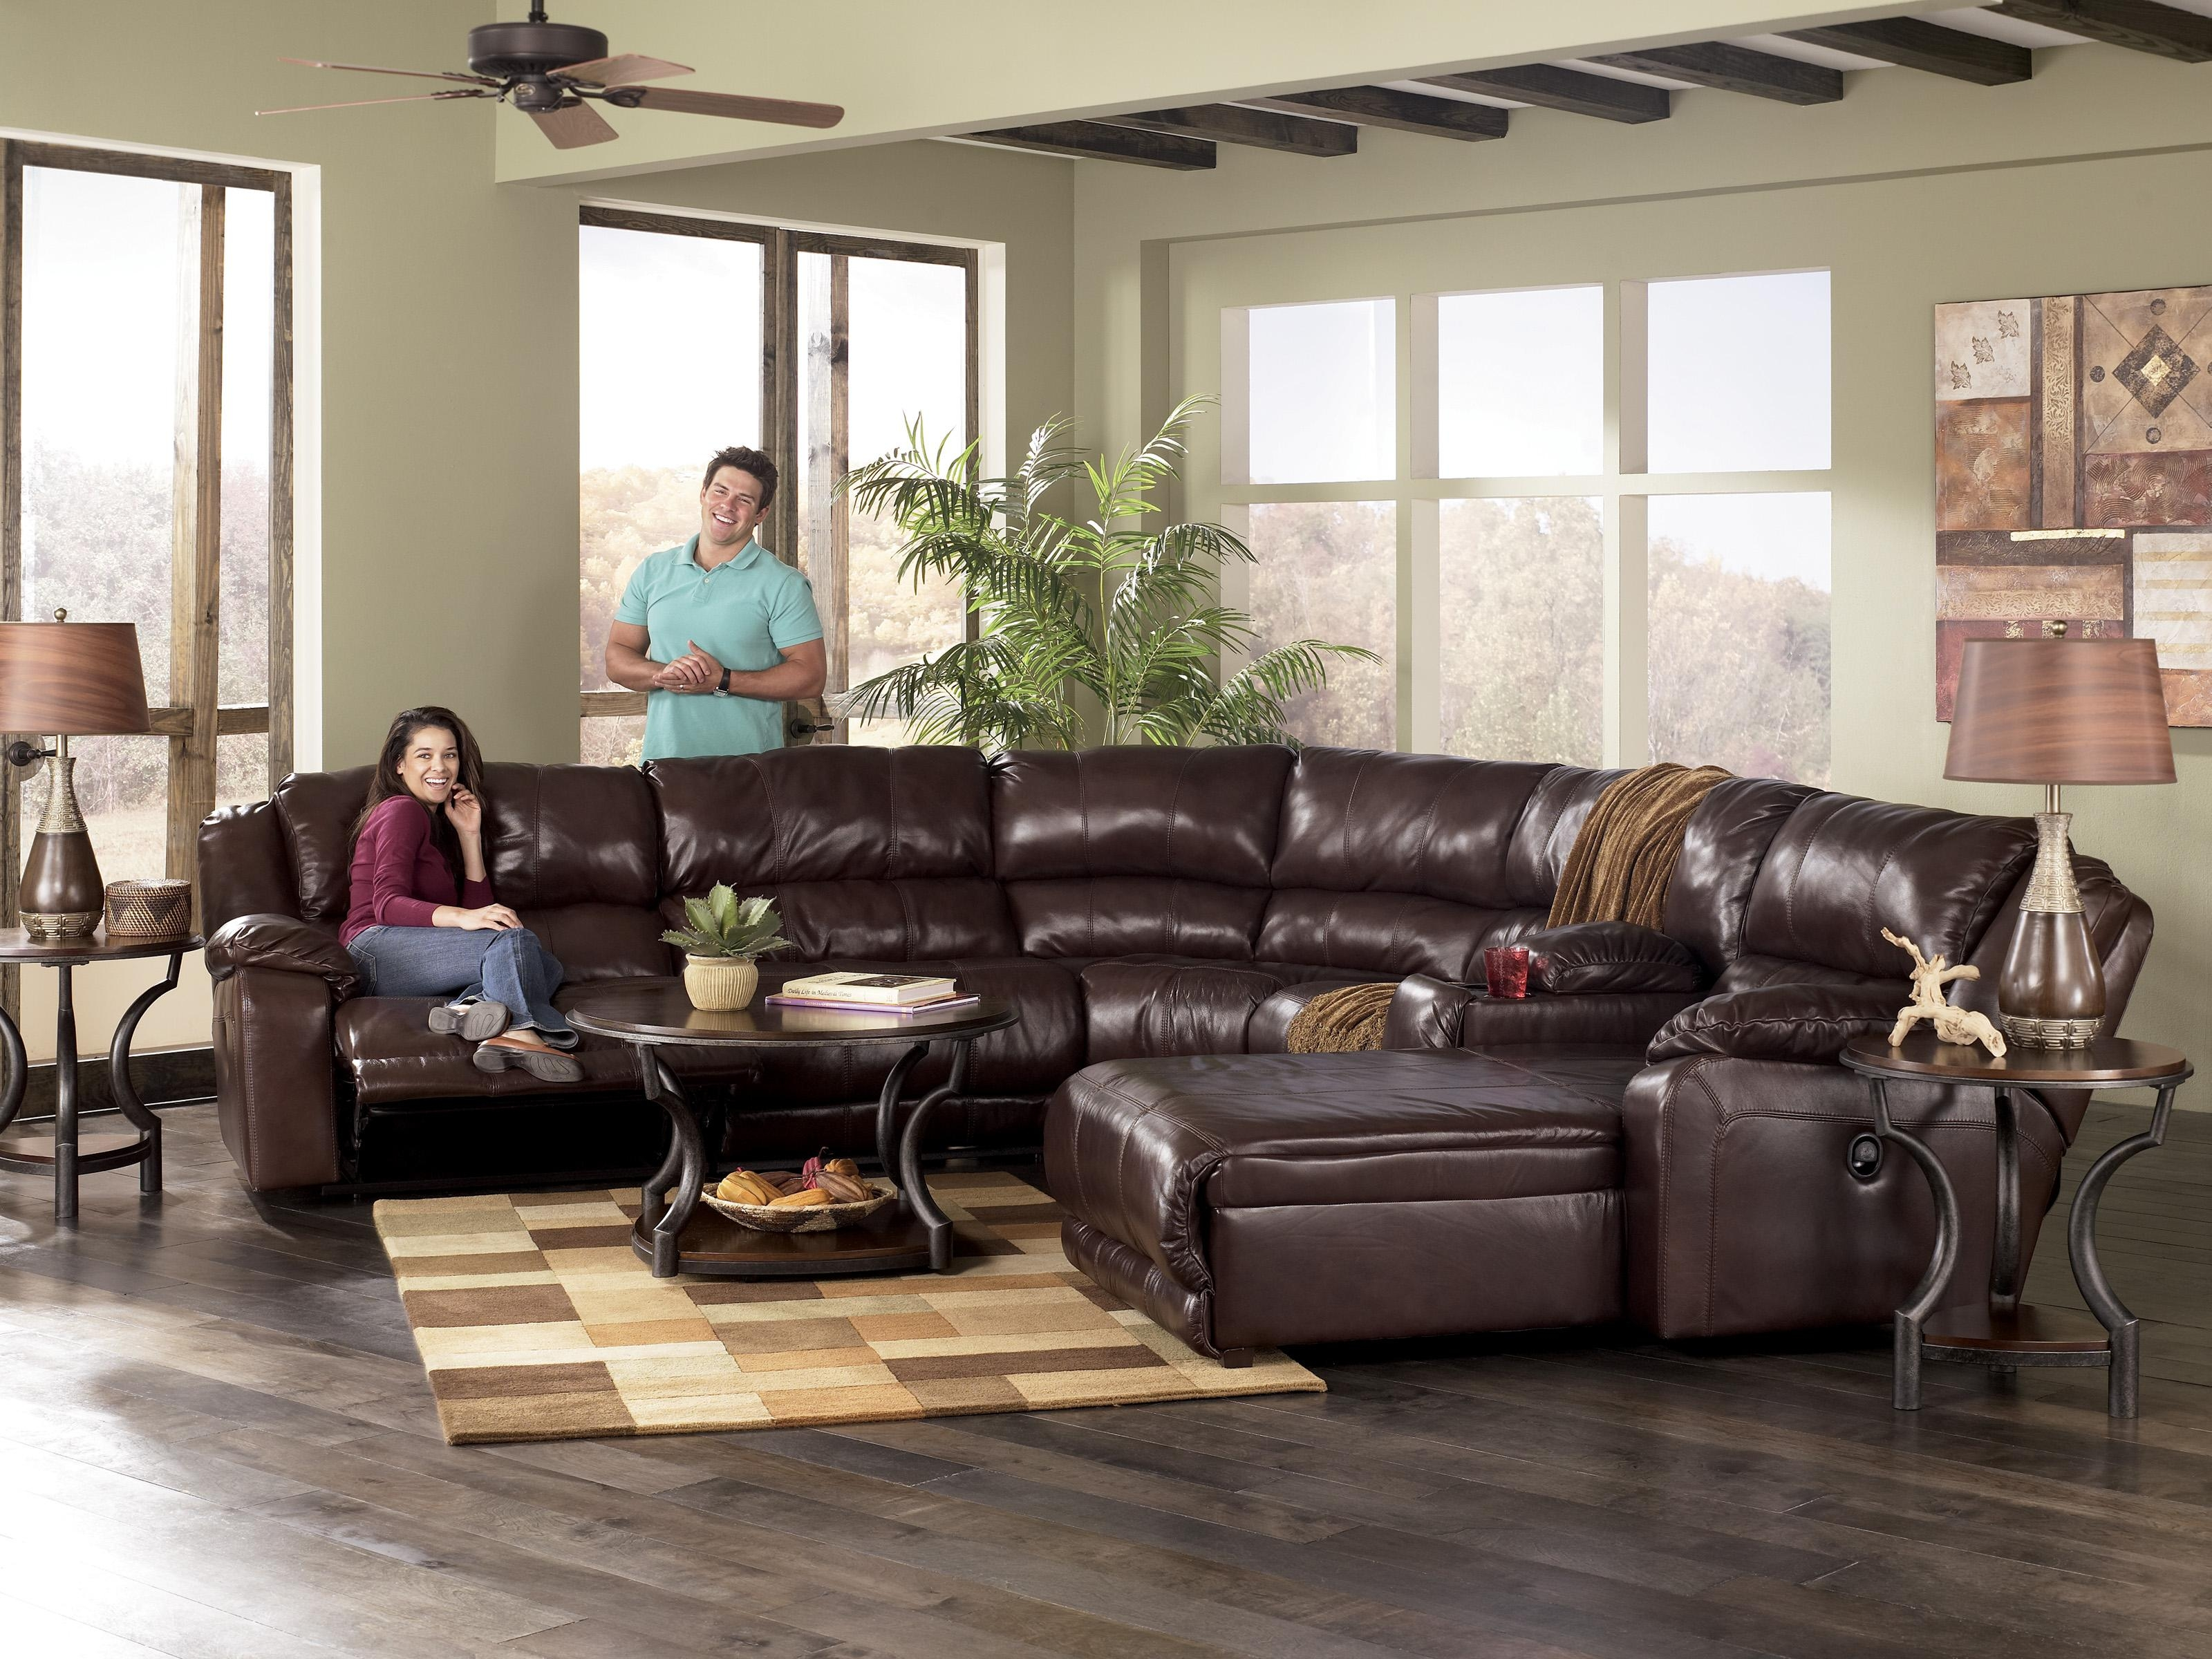 Chair & Sofa: Have An Interesting Living Room With Ashley Within Ashley Furniture Leather Sectional Sofas (Image 8 of 20)